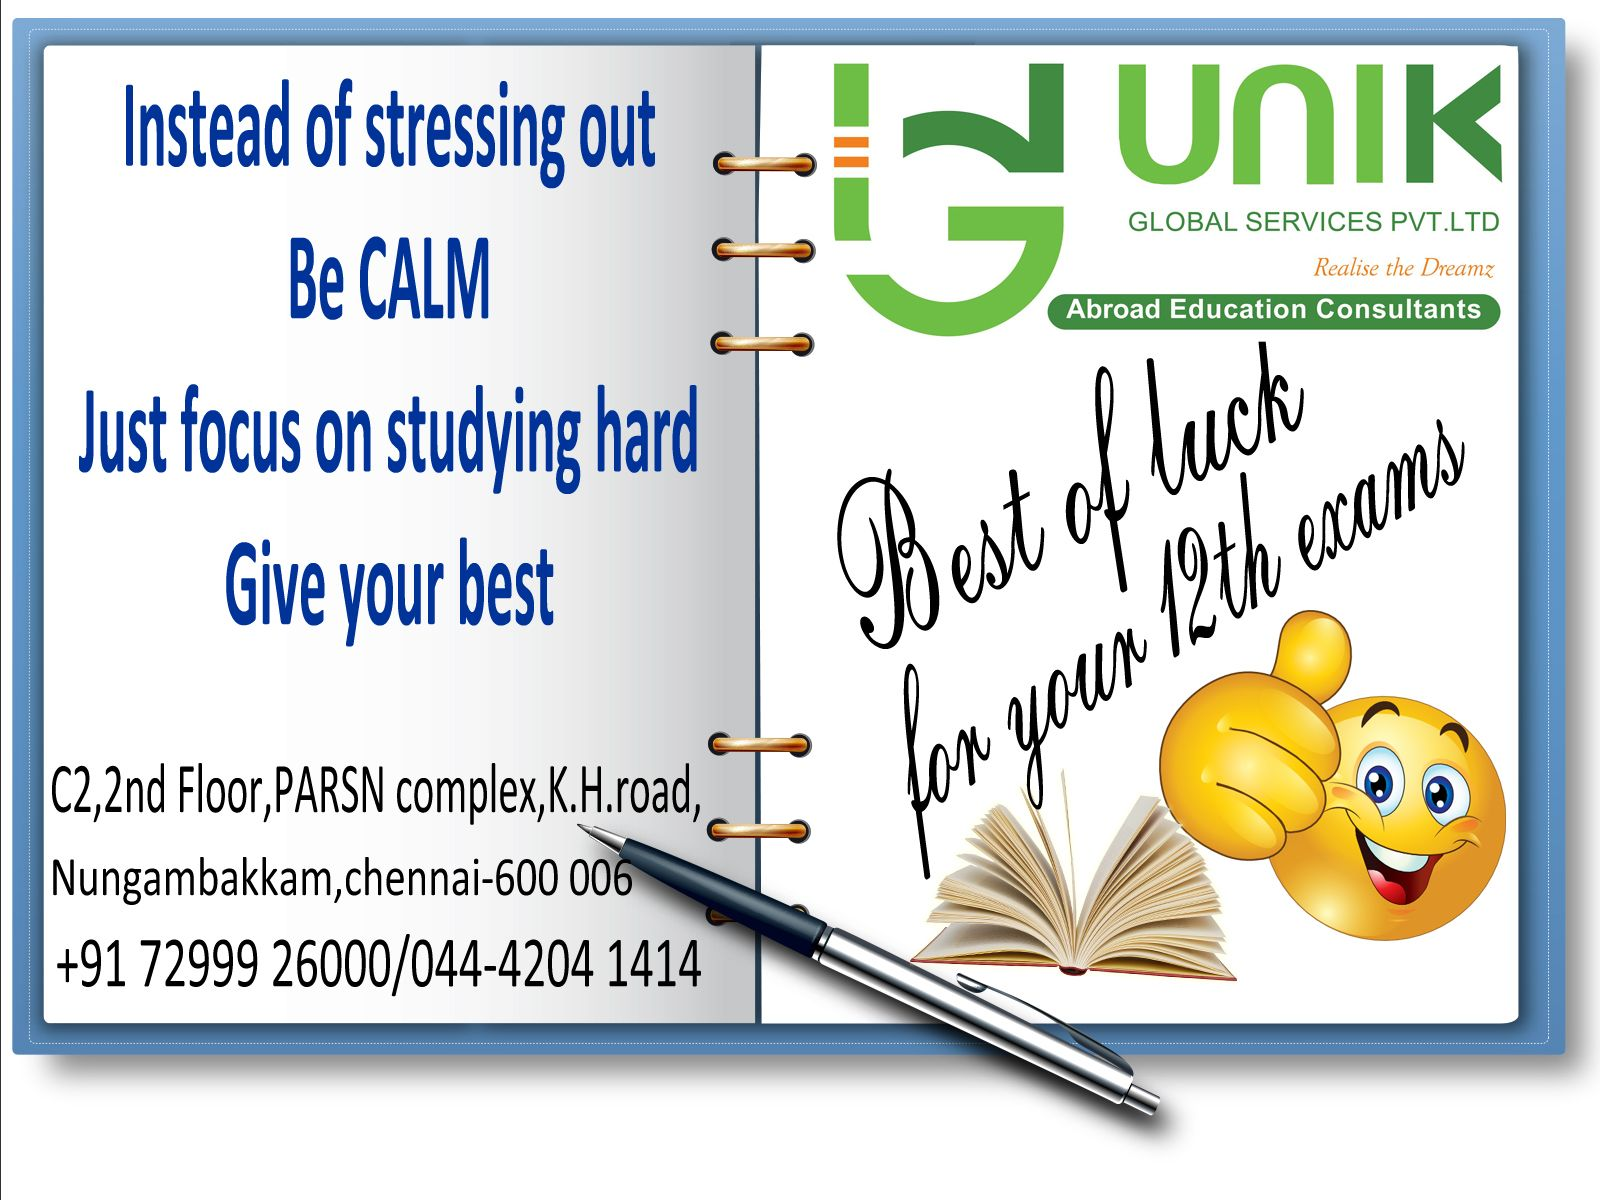 Best Wishes For Your 12th Exam Study hard, Educational